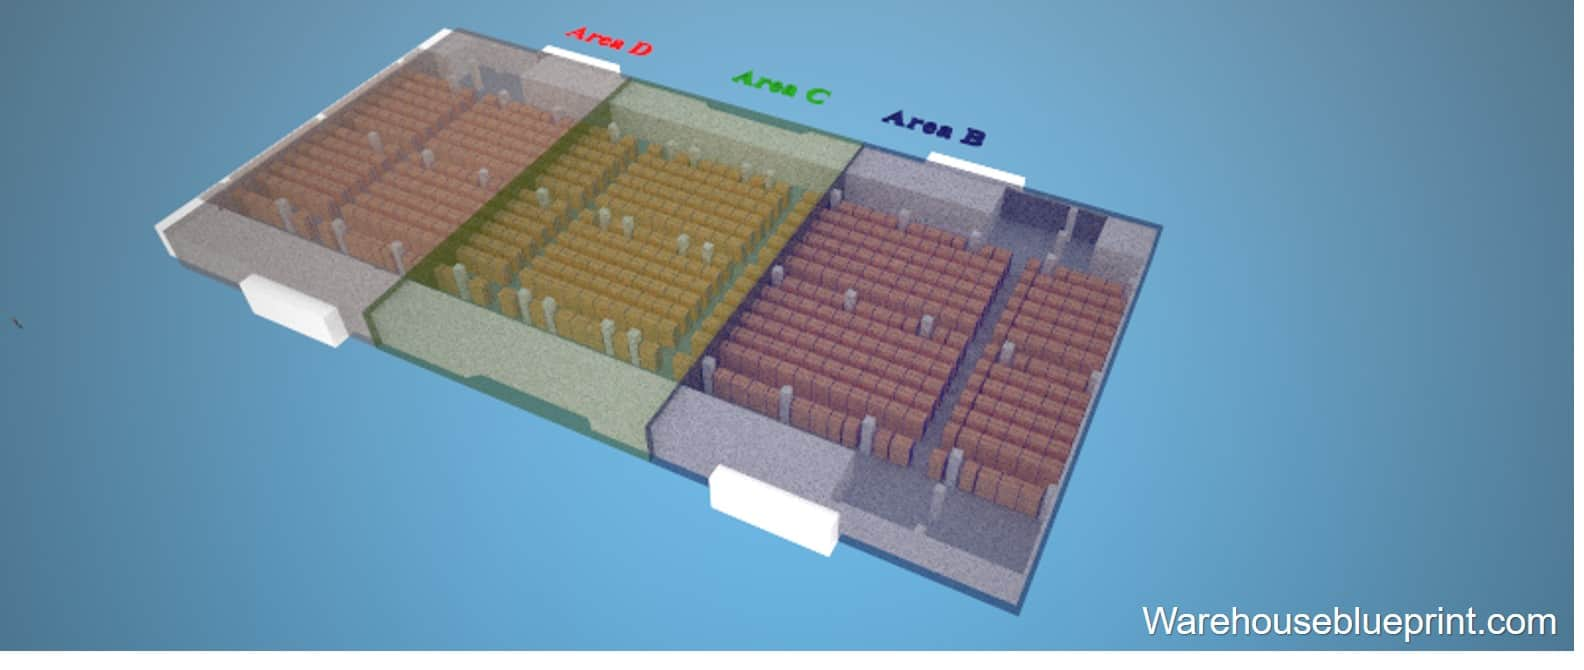 Warehouse Layout 5 - rendered